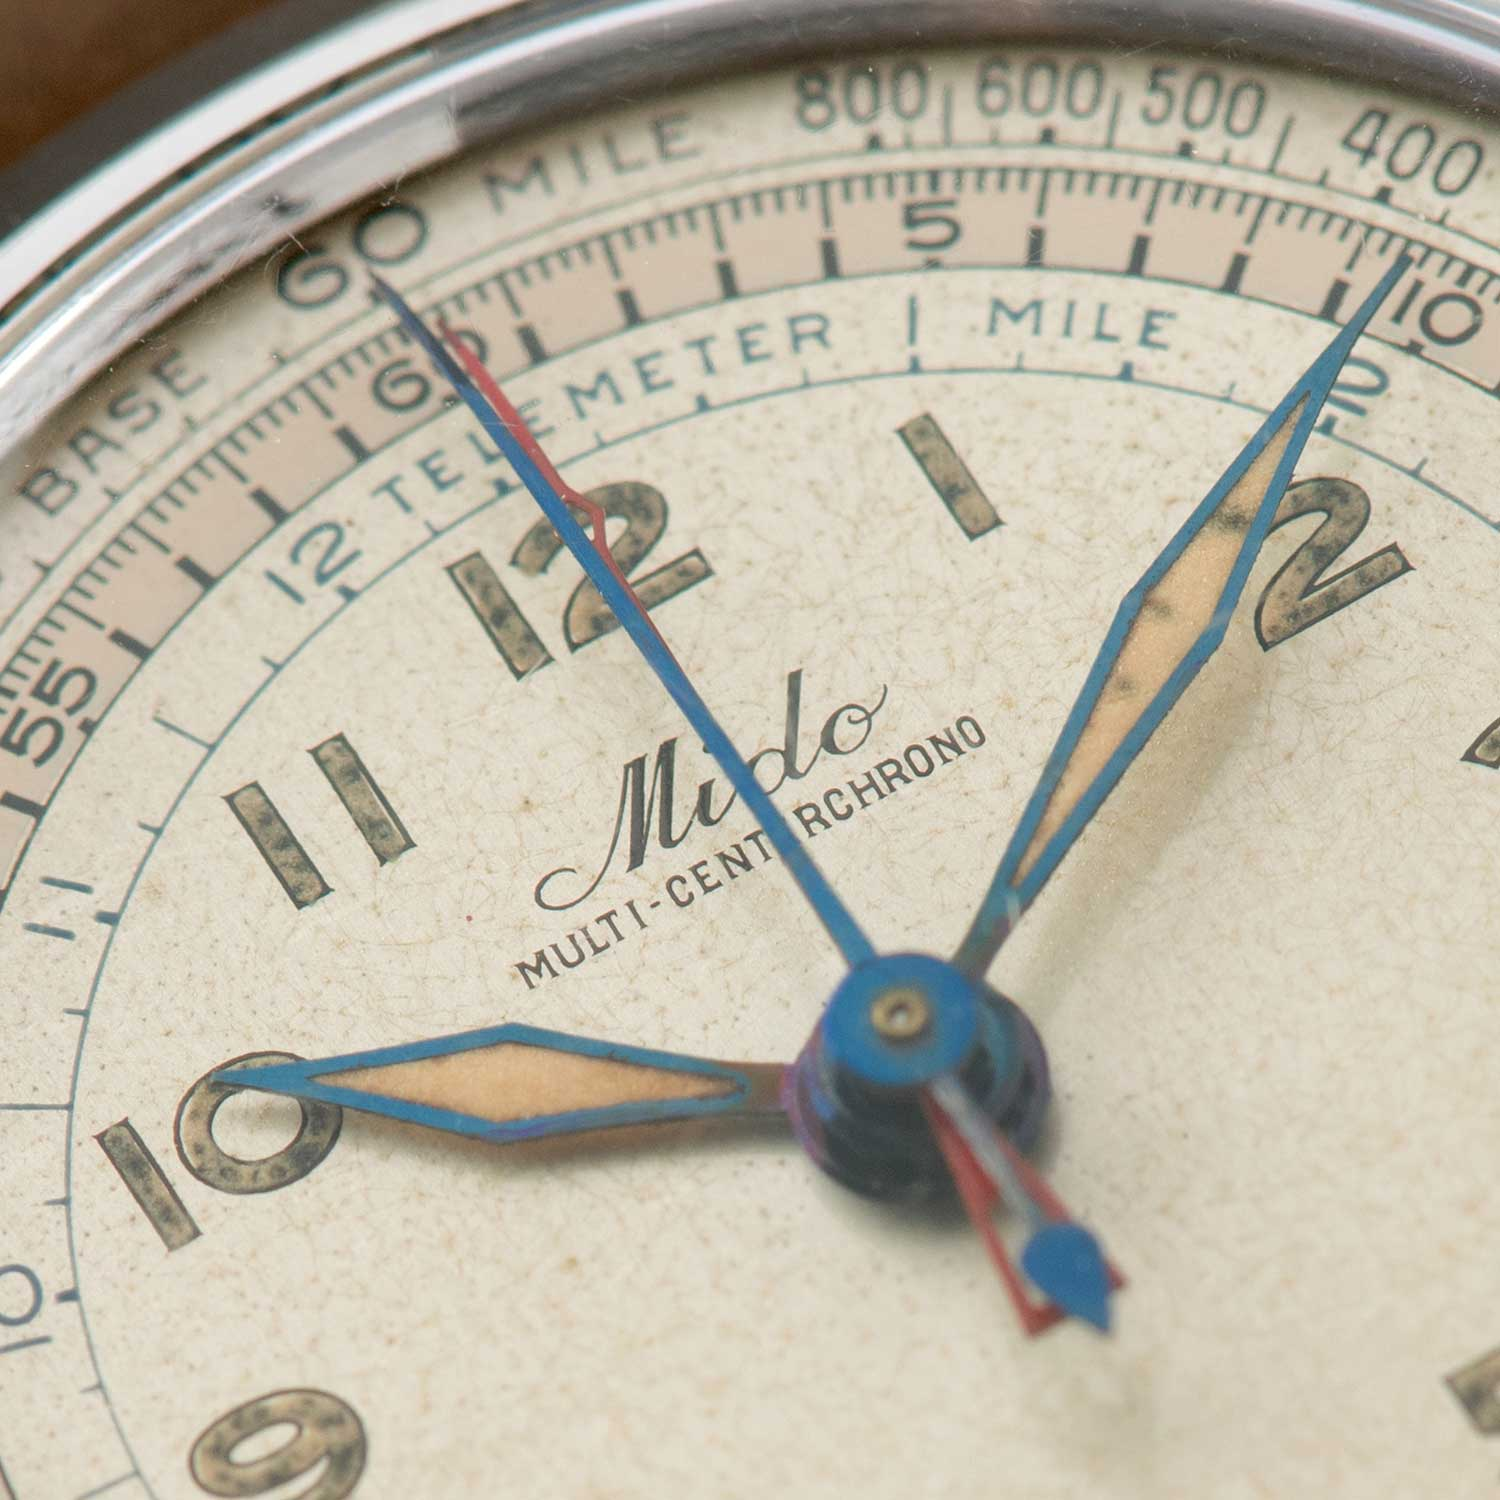 The four hands and dual scales of the Mido Multi-Centerchrono.